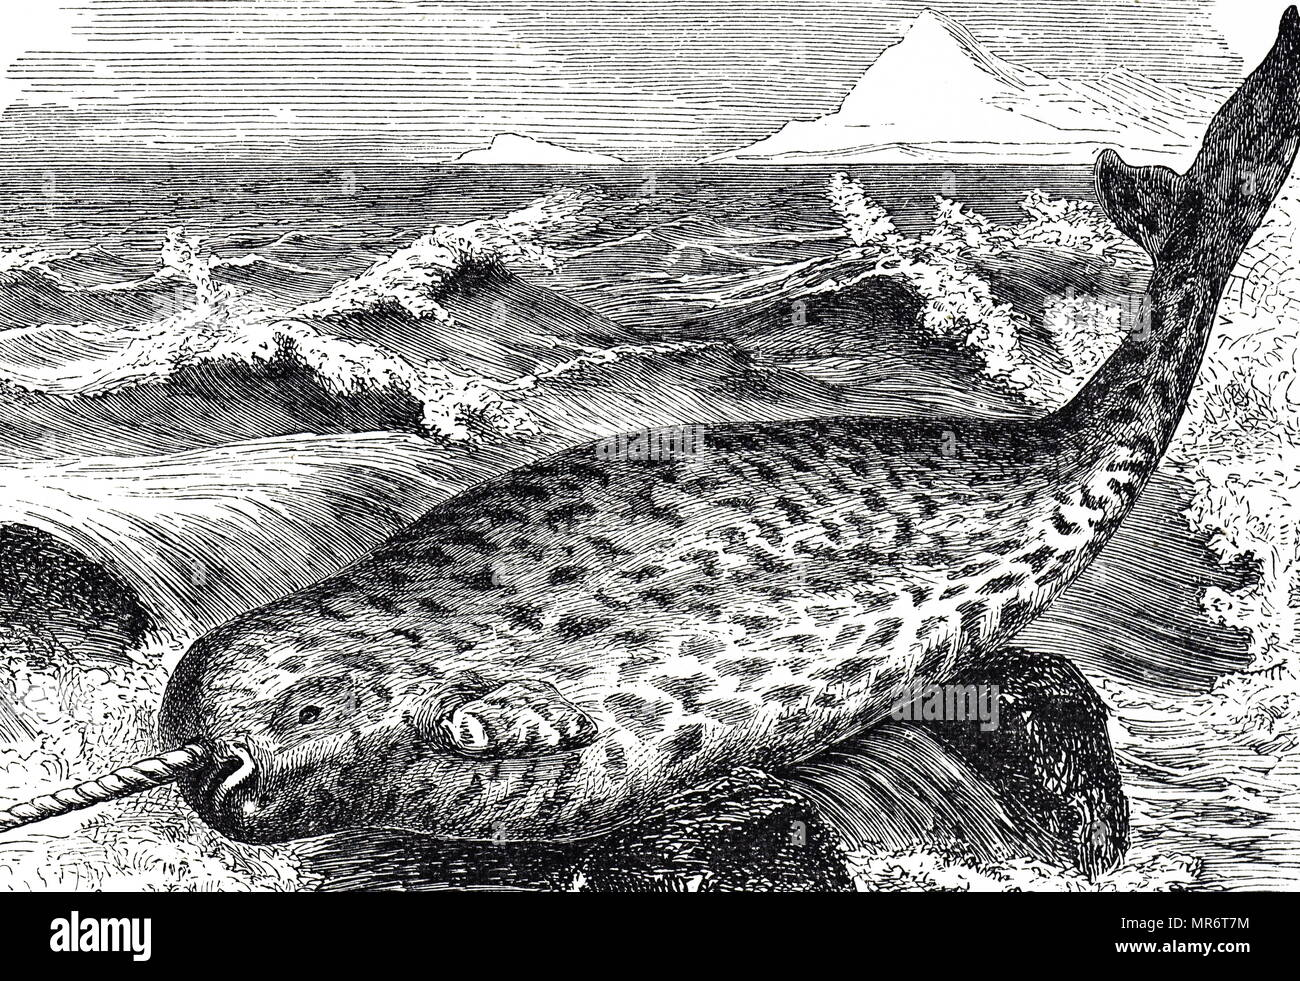 Engraving depicting a Narwhal, a medium-sized toothed whale that possesses a large 'tusk' from a protruding canine tooth. It lives year-round in the Arctic waters around Greenland, Canada, and Russia. Dated 19th century - Stock Image